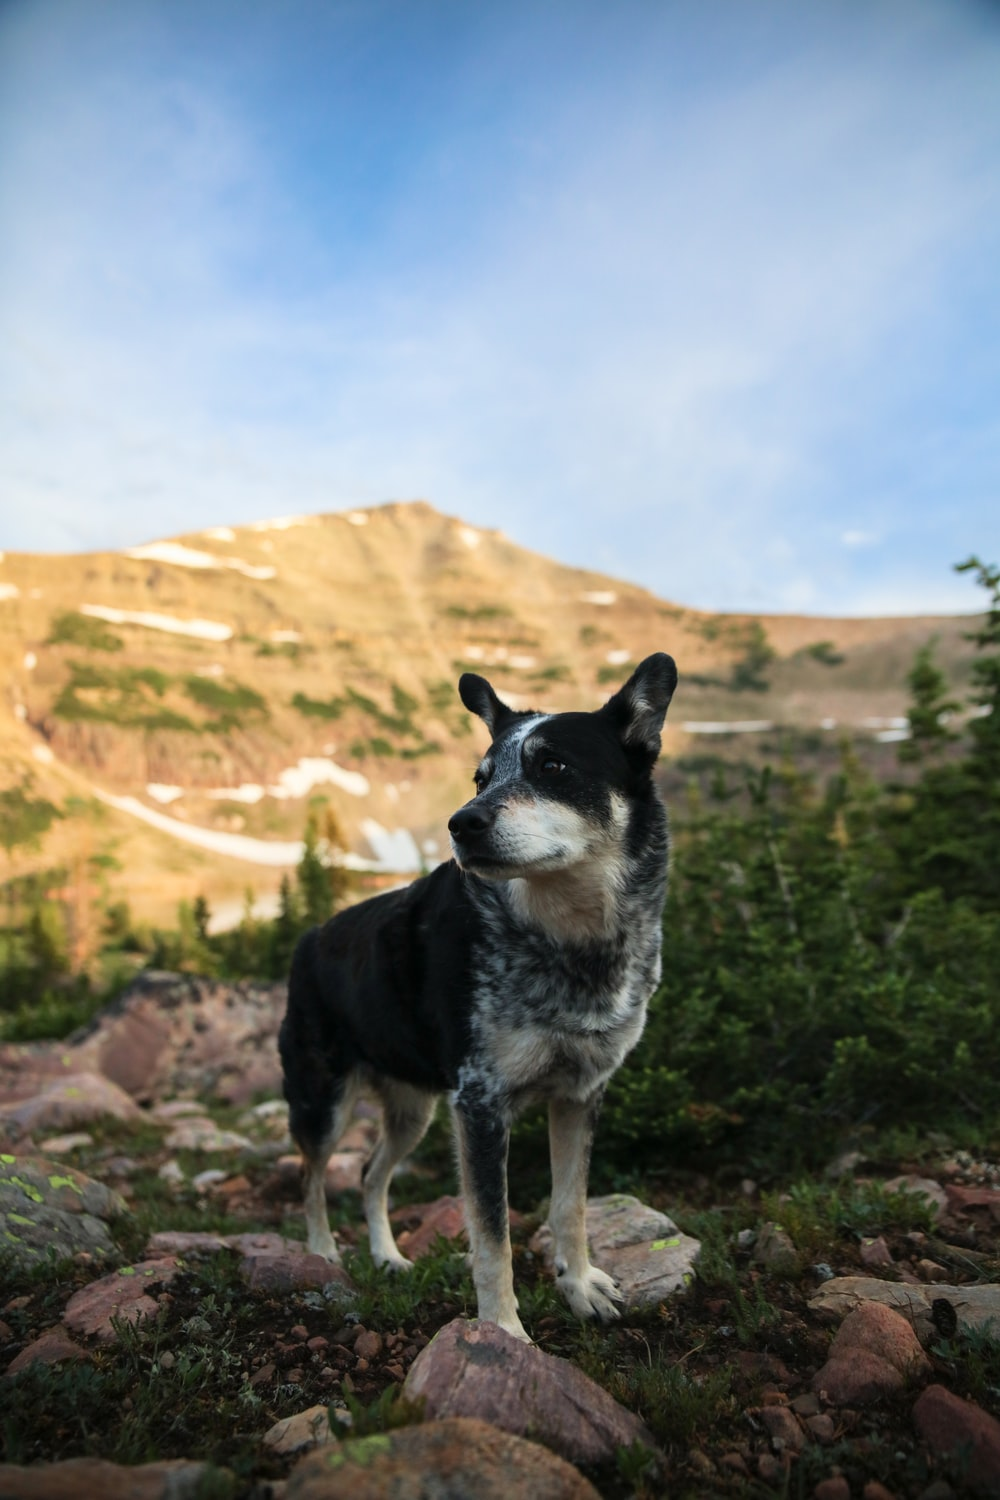 dog on mountain range near trees